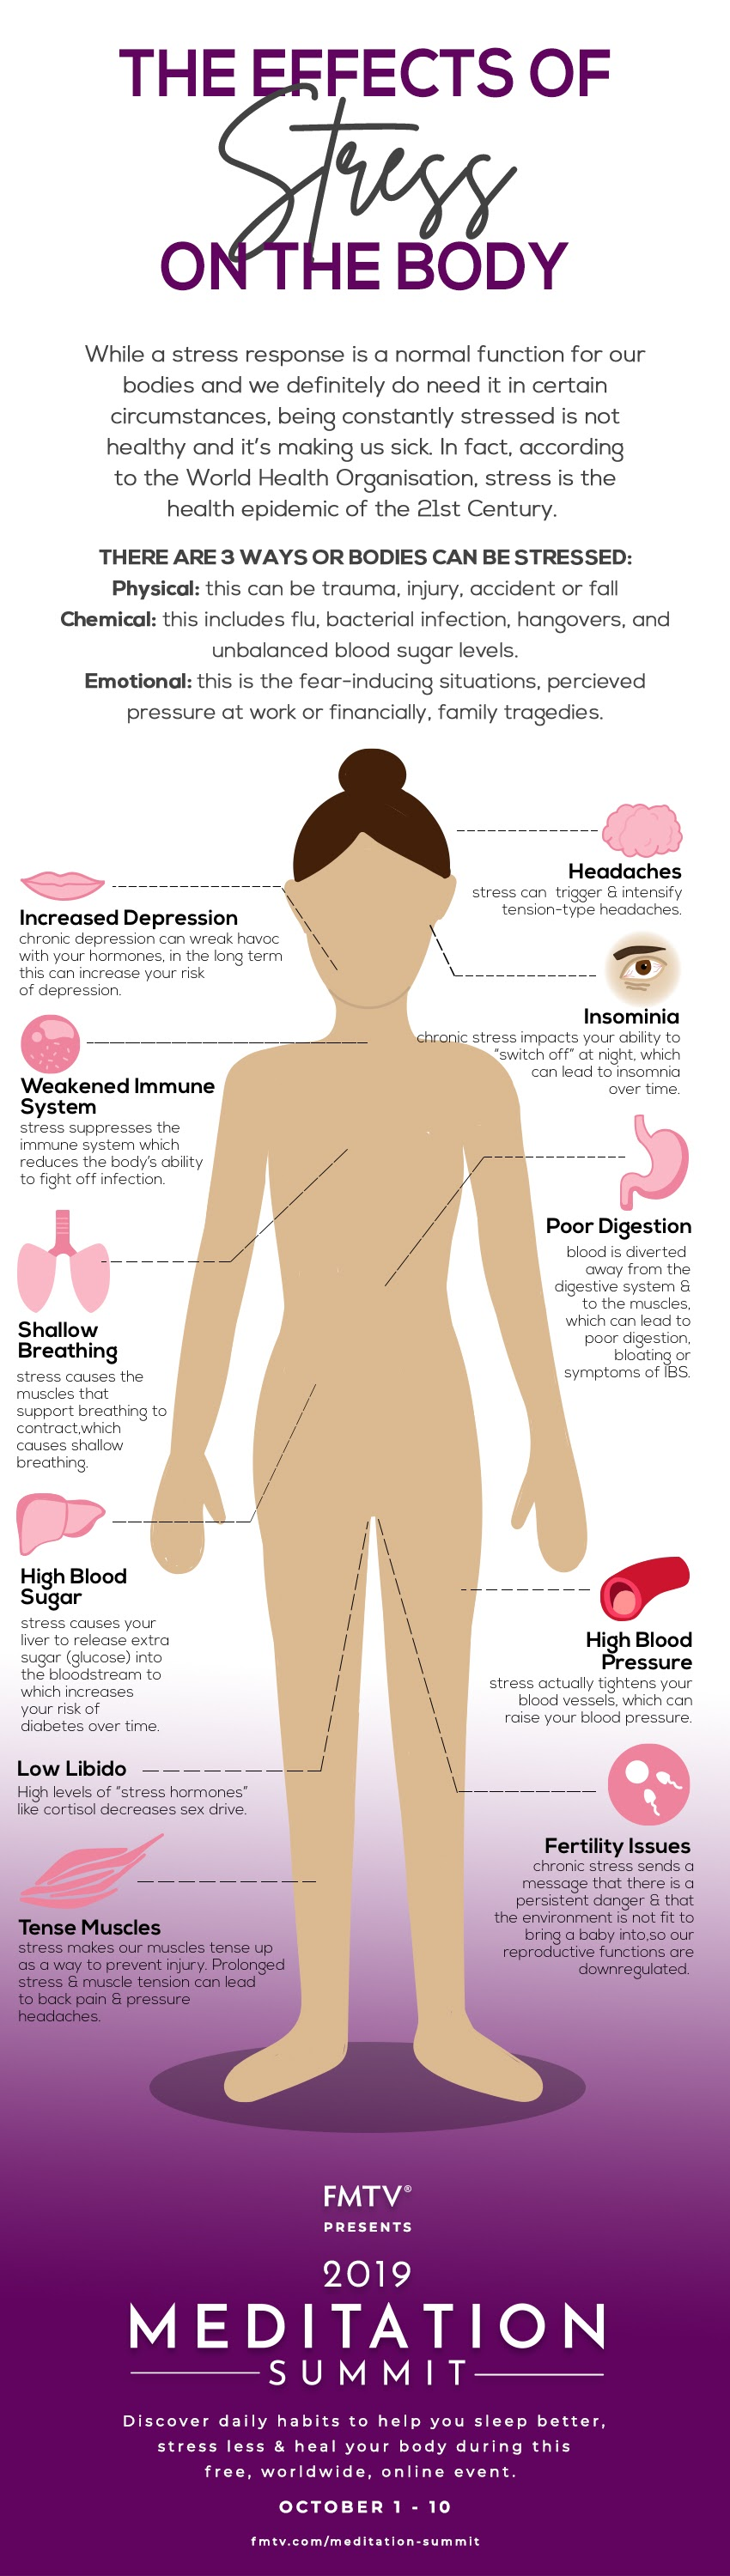 The Effects of Stress on the Body #Infographic